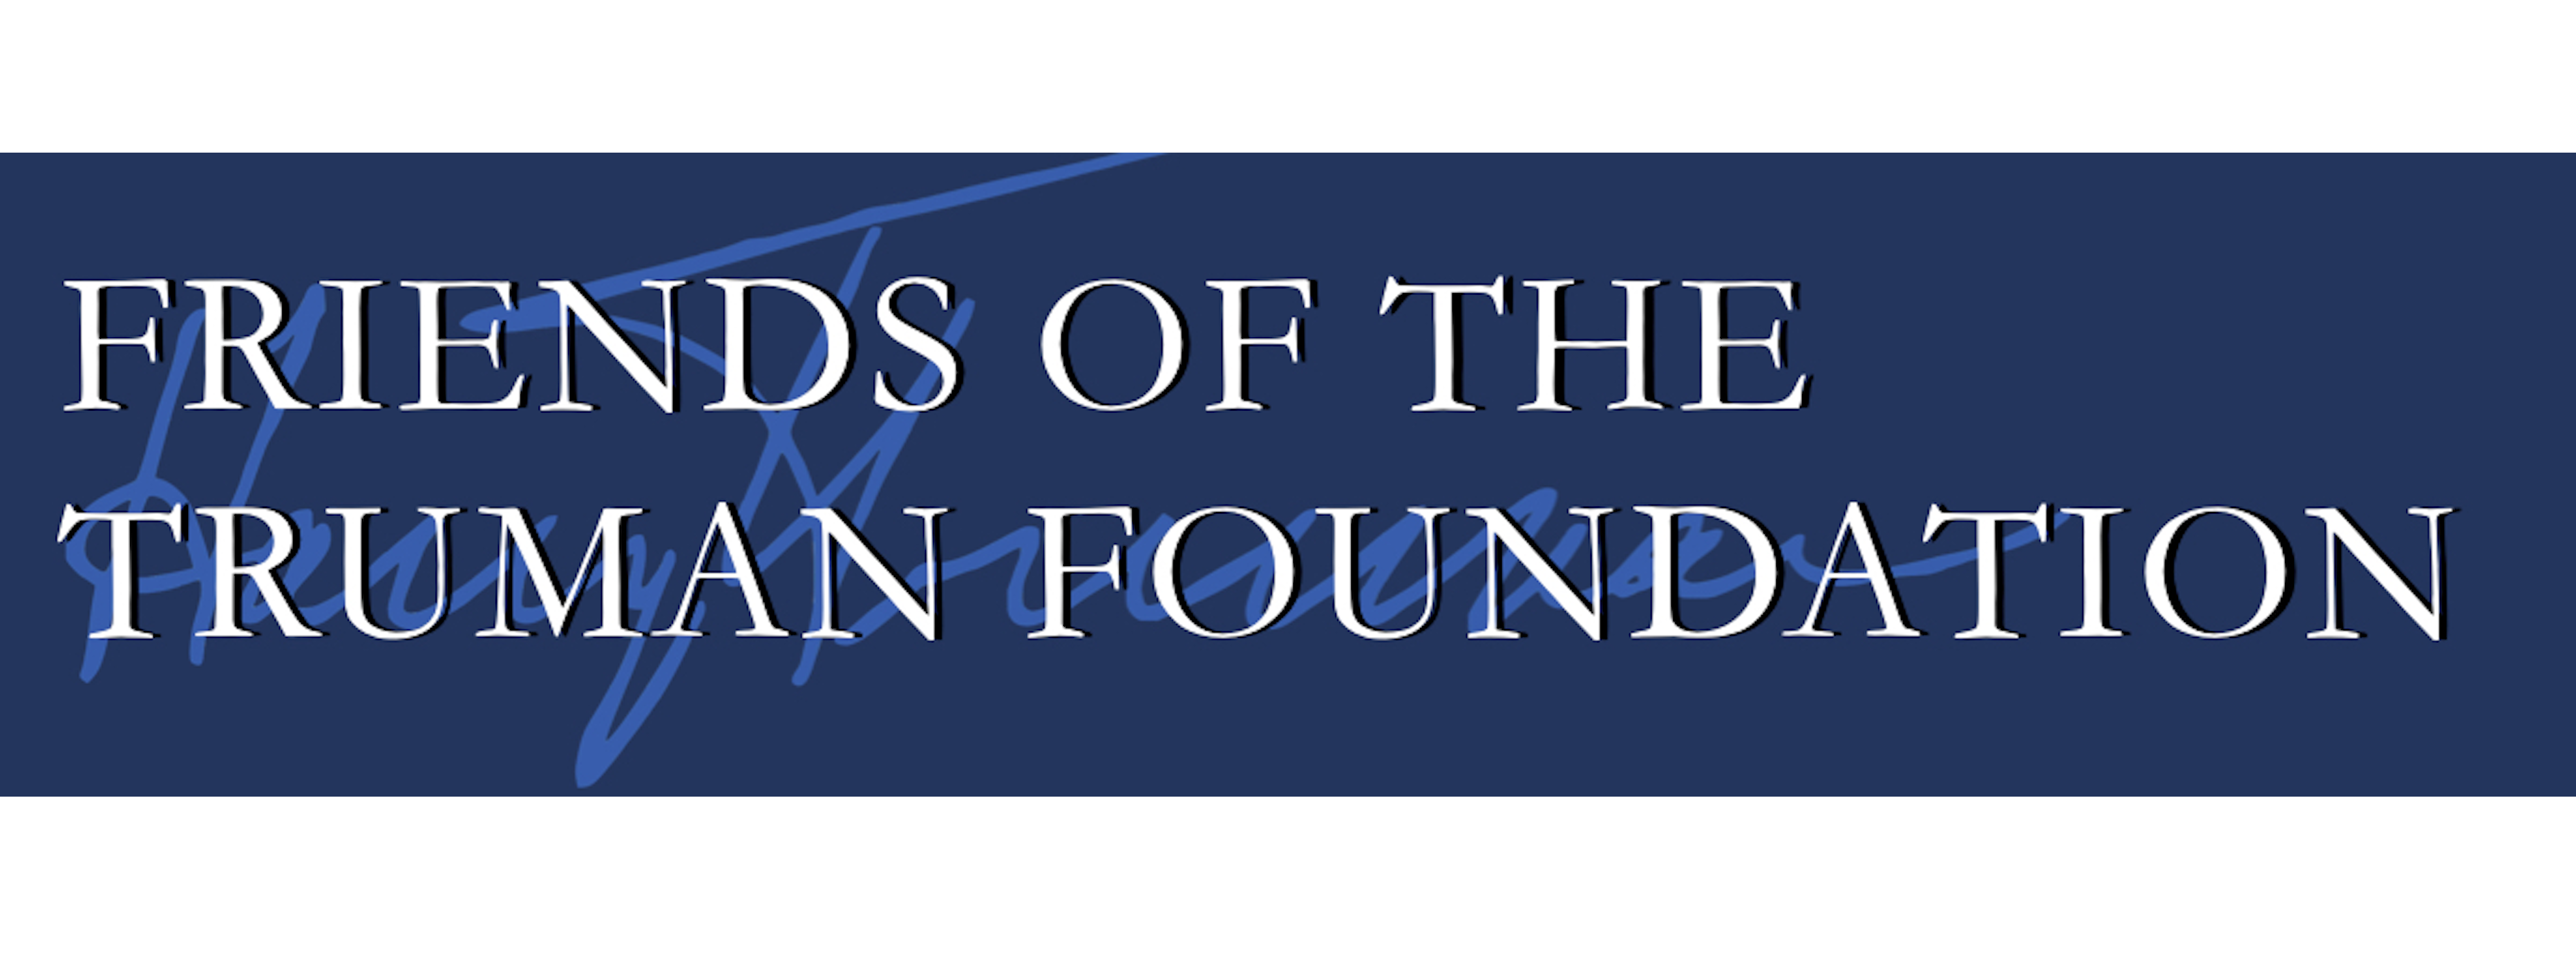 Friends of the Truman Foundation